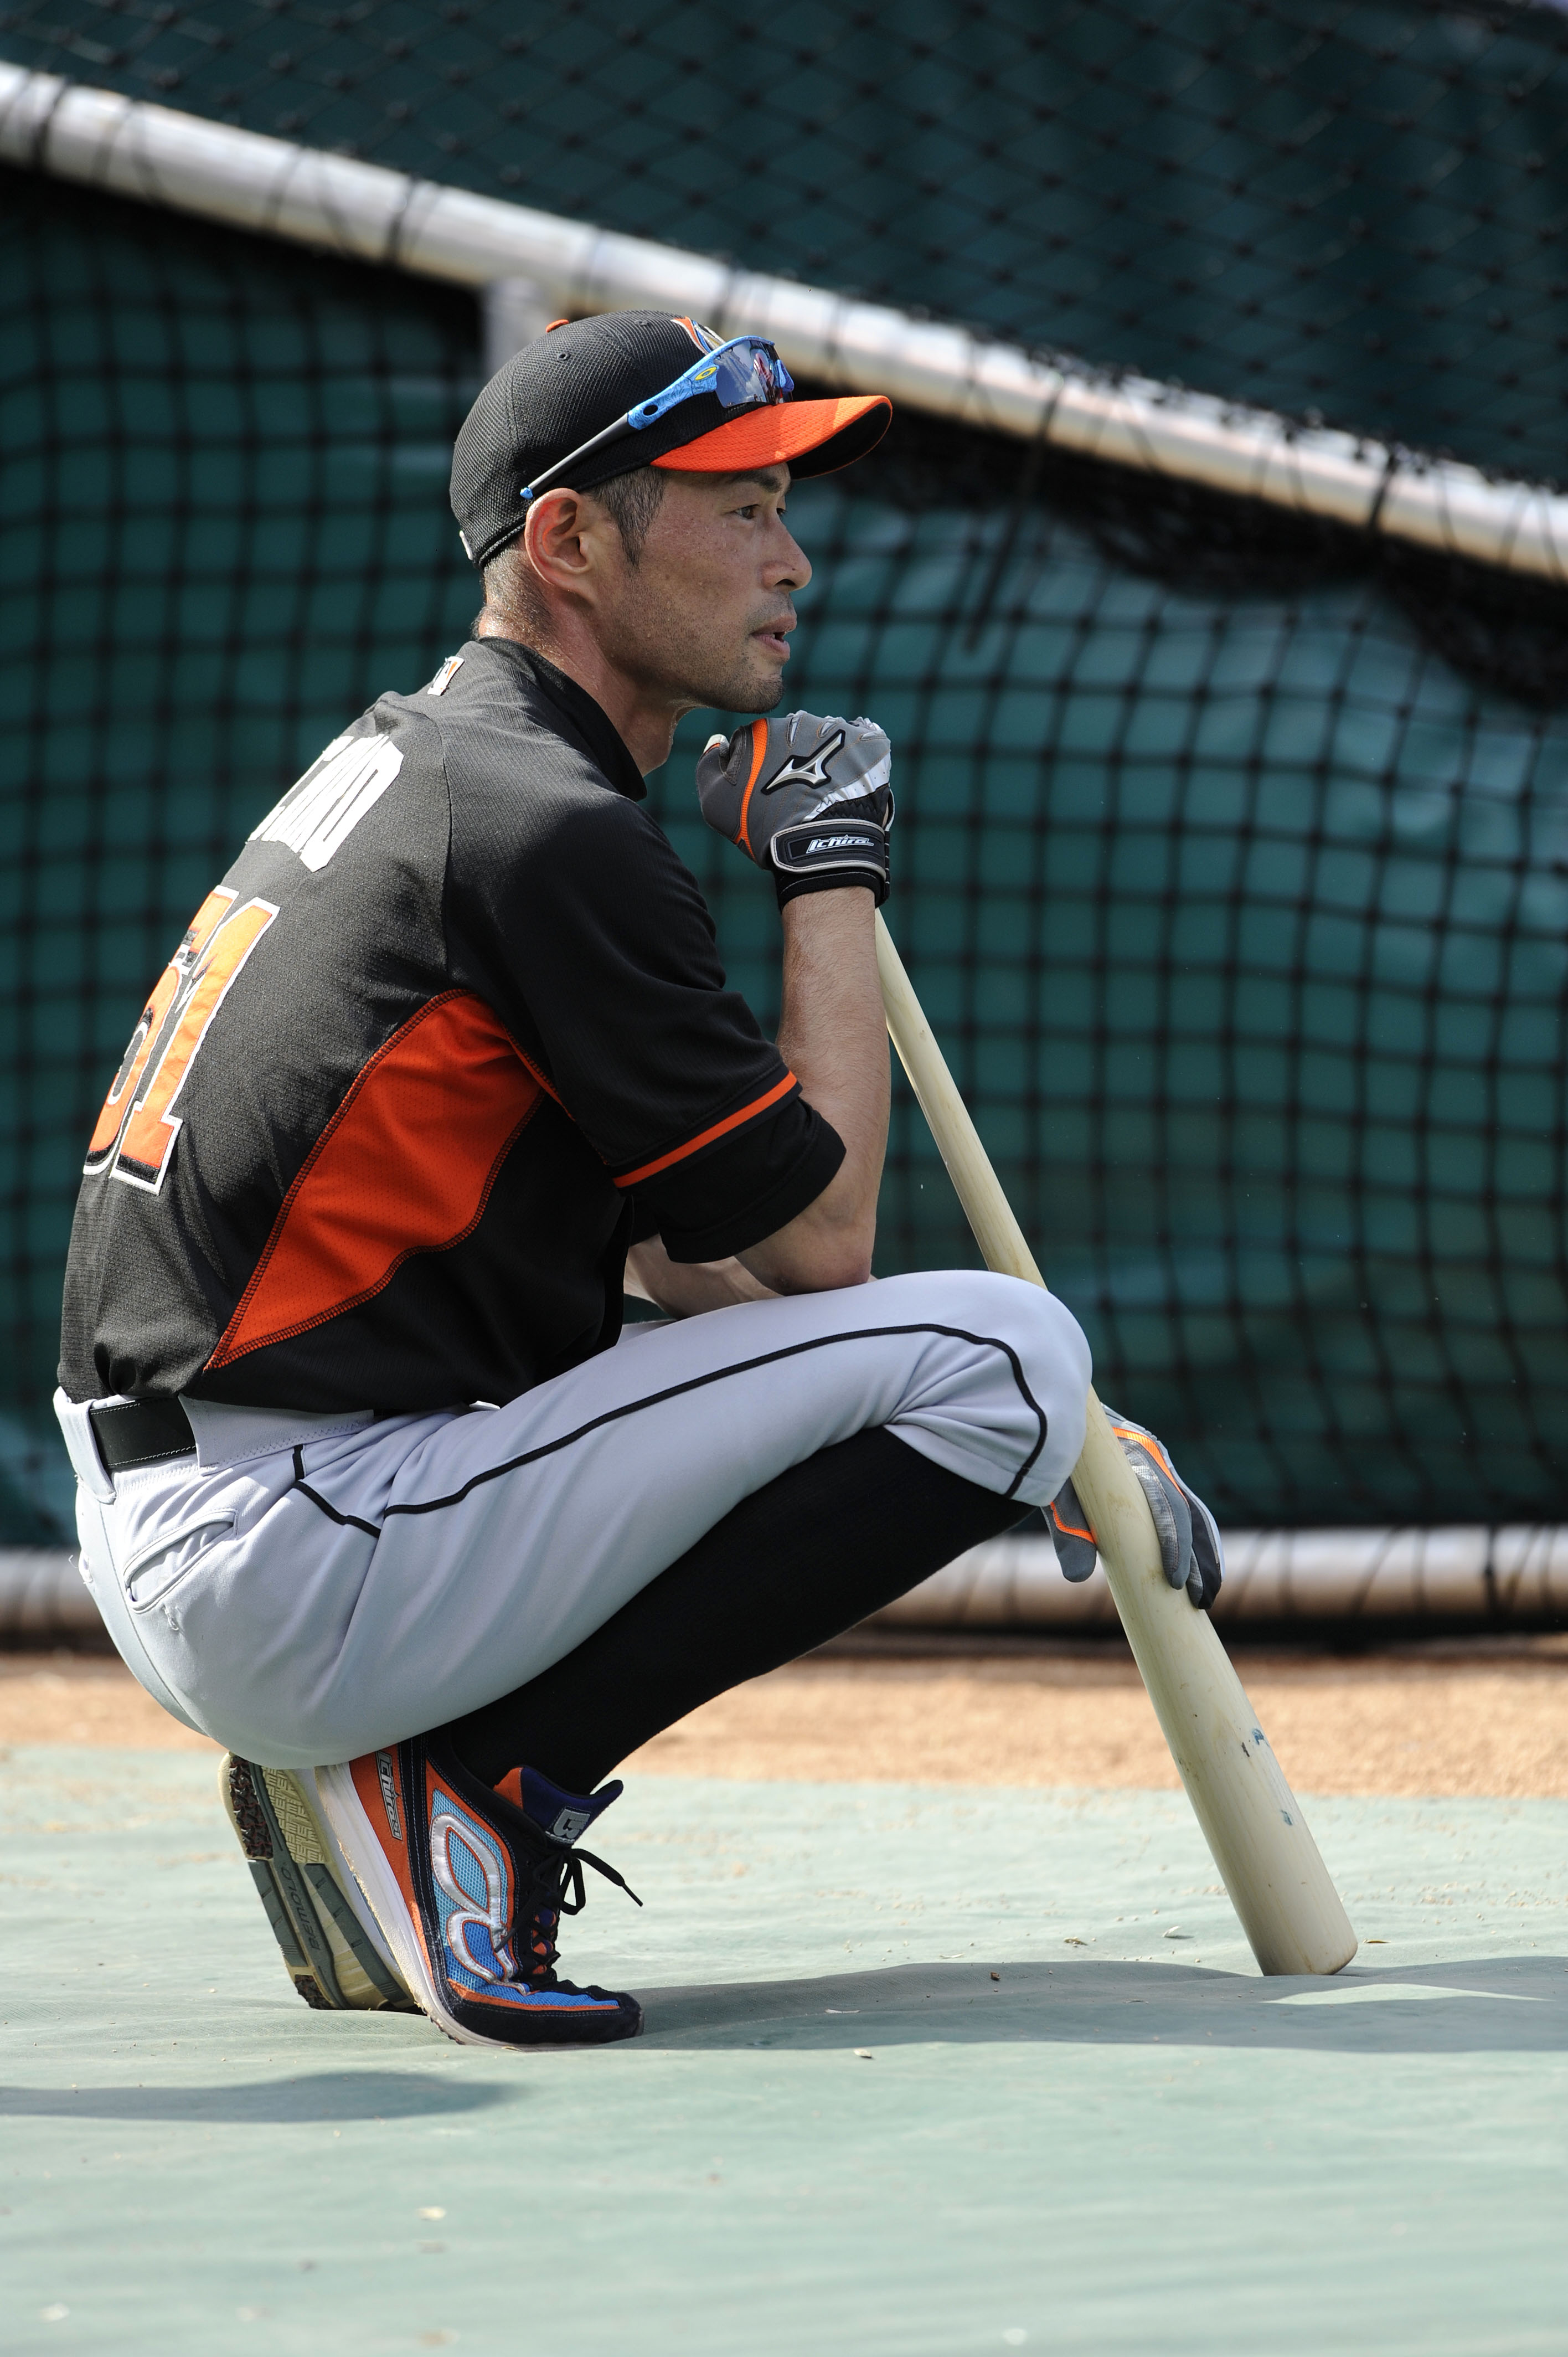 Miami Marlins' Ichiro Suzuki (51) waits at the batting cage prior to the baseball game with the St. Louis Cardinals, Saturday, Aug. 15, 2015, at Busch Stadium in St. Louis. (AP Photo/Bill Boyce)